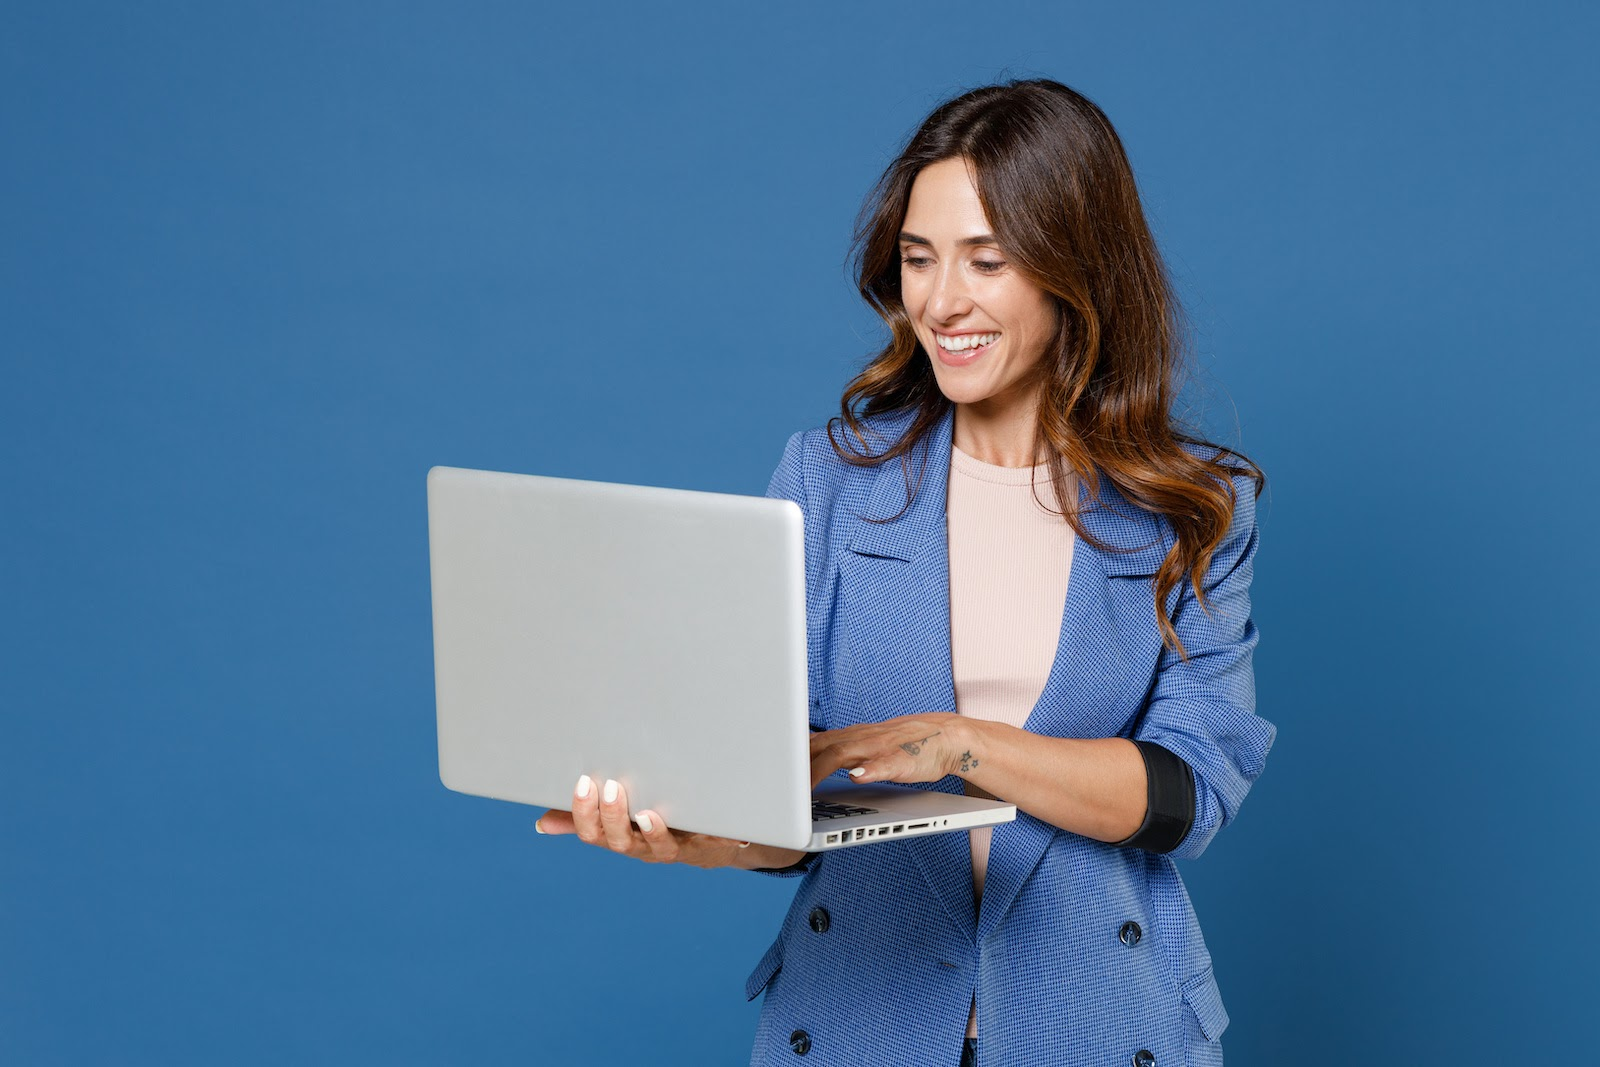 A corporate event planner on her laptop